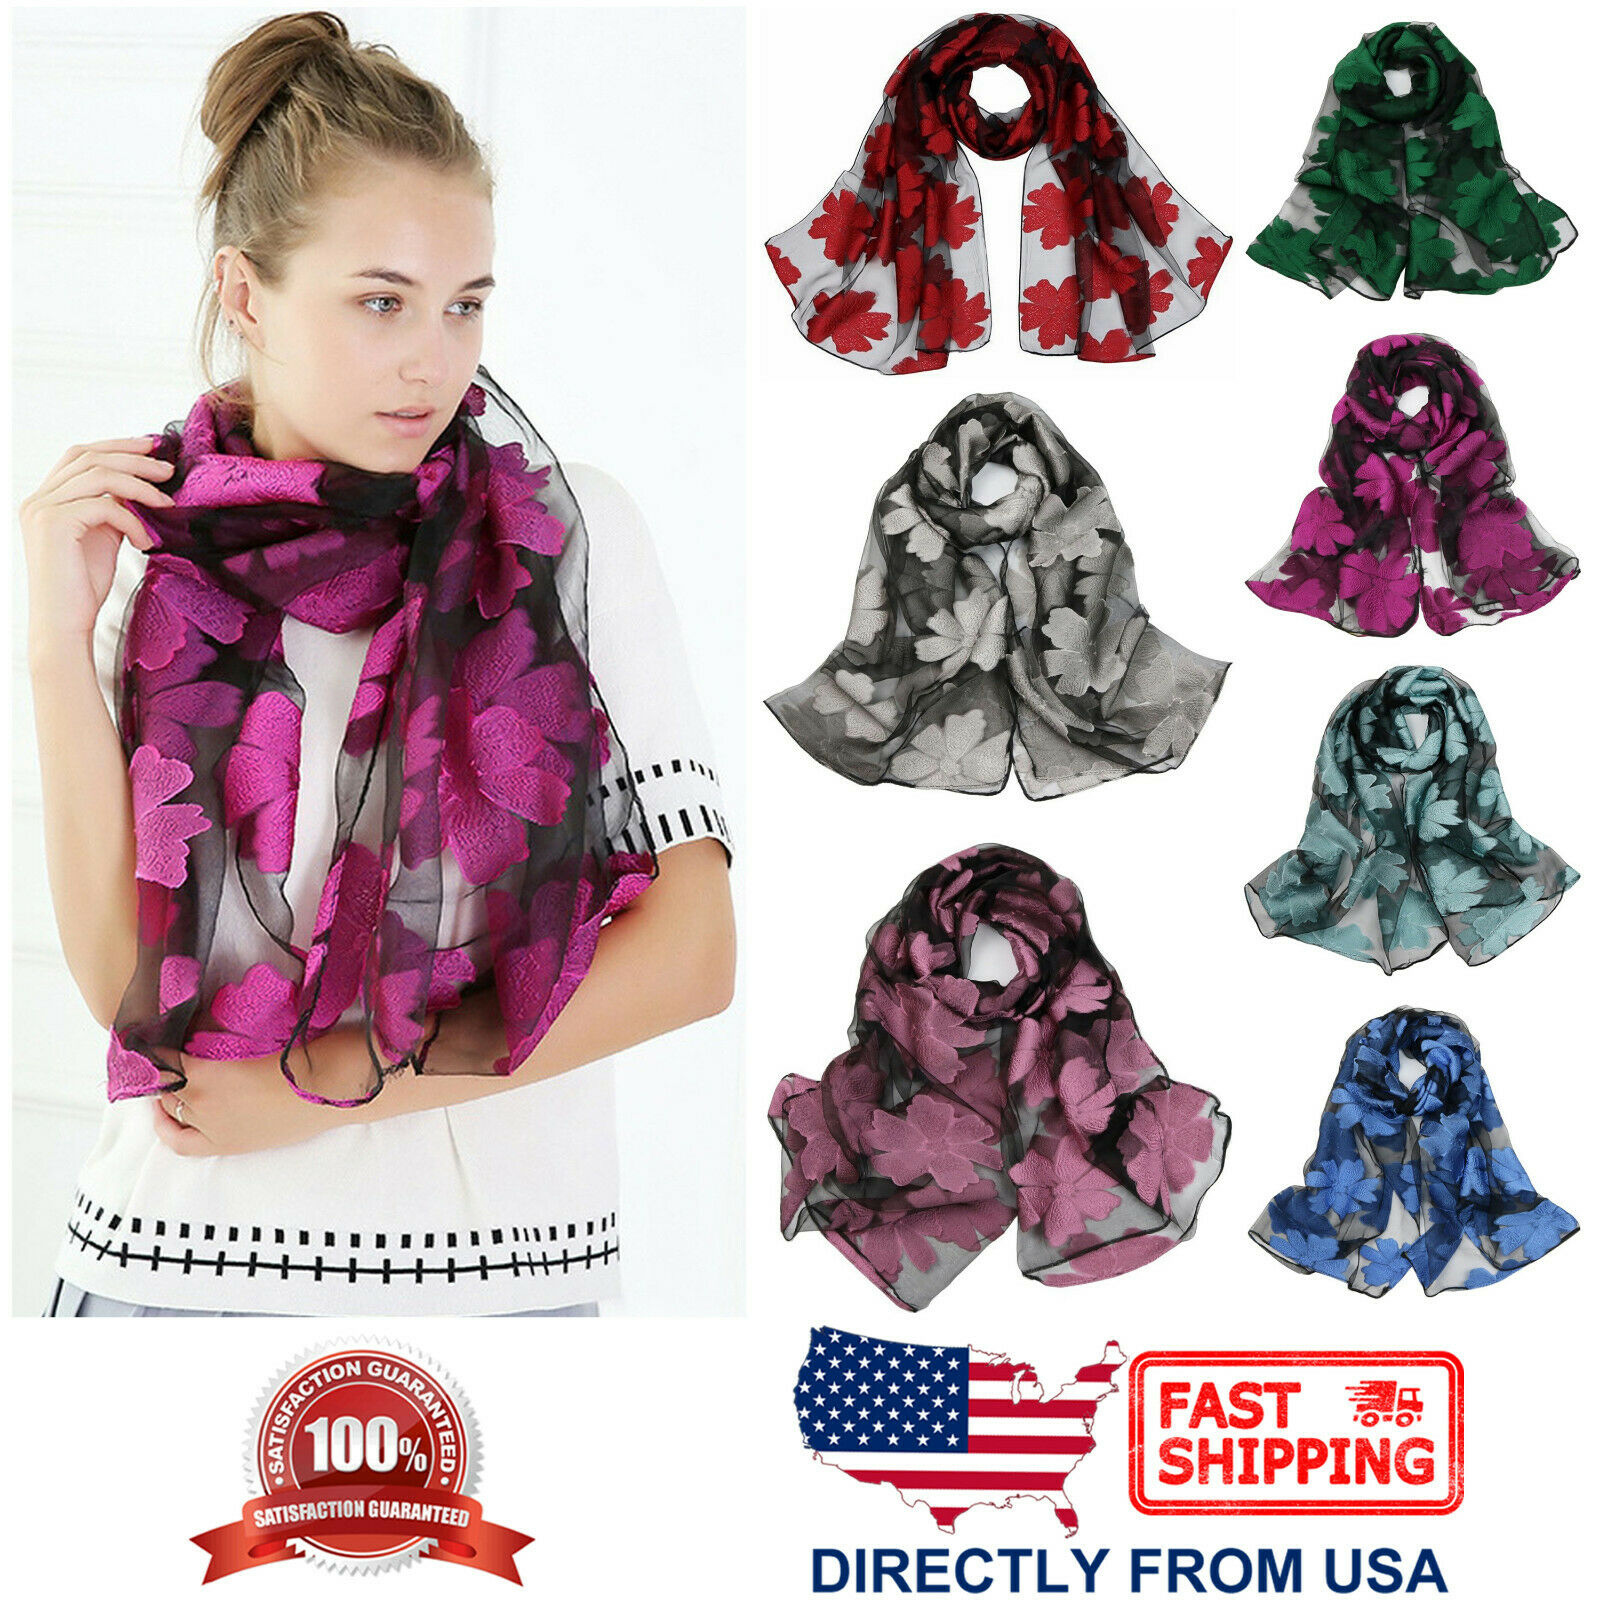 Women's Floral Organza Flower Long Shawl Lightweight Wrap Fashion Scarf Clothing, Shoes & Accessories